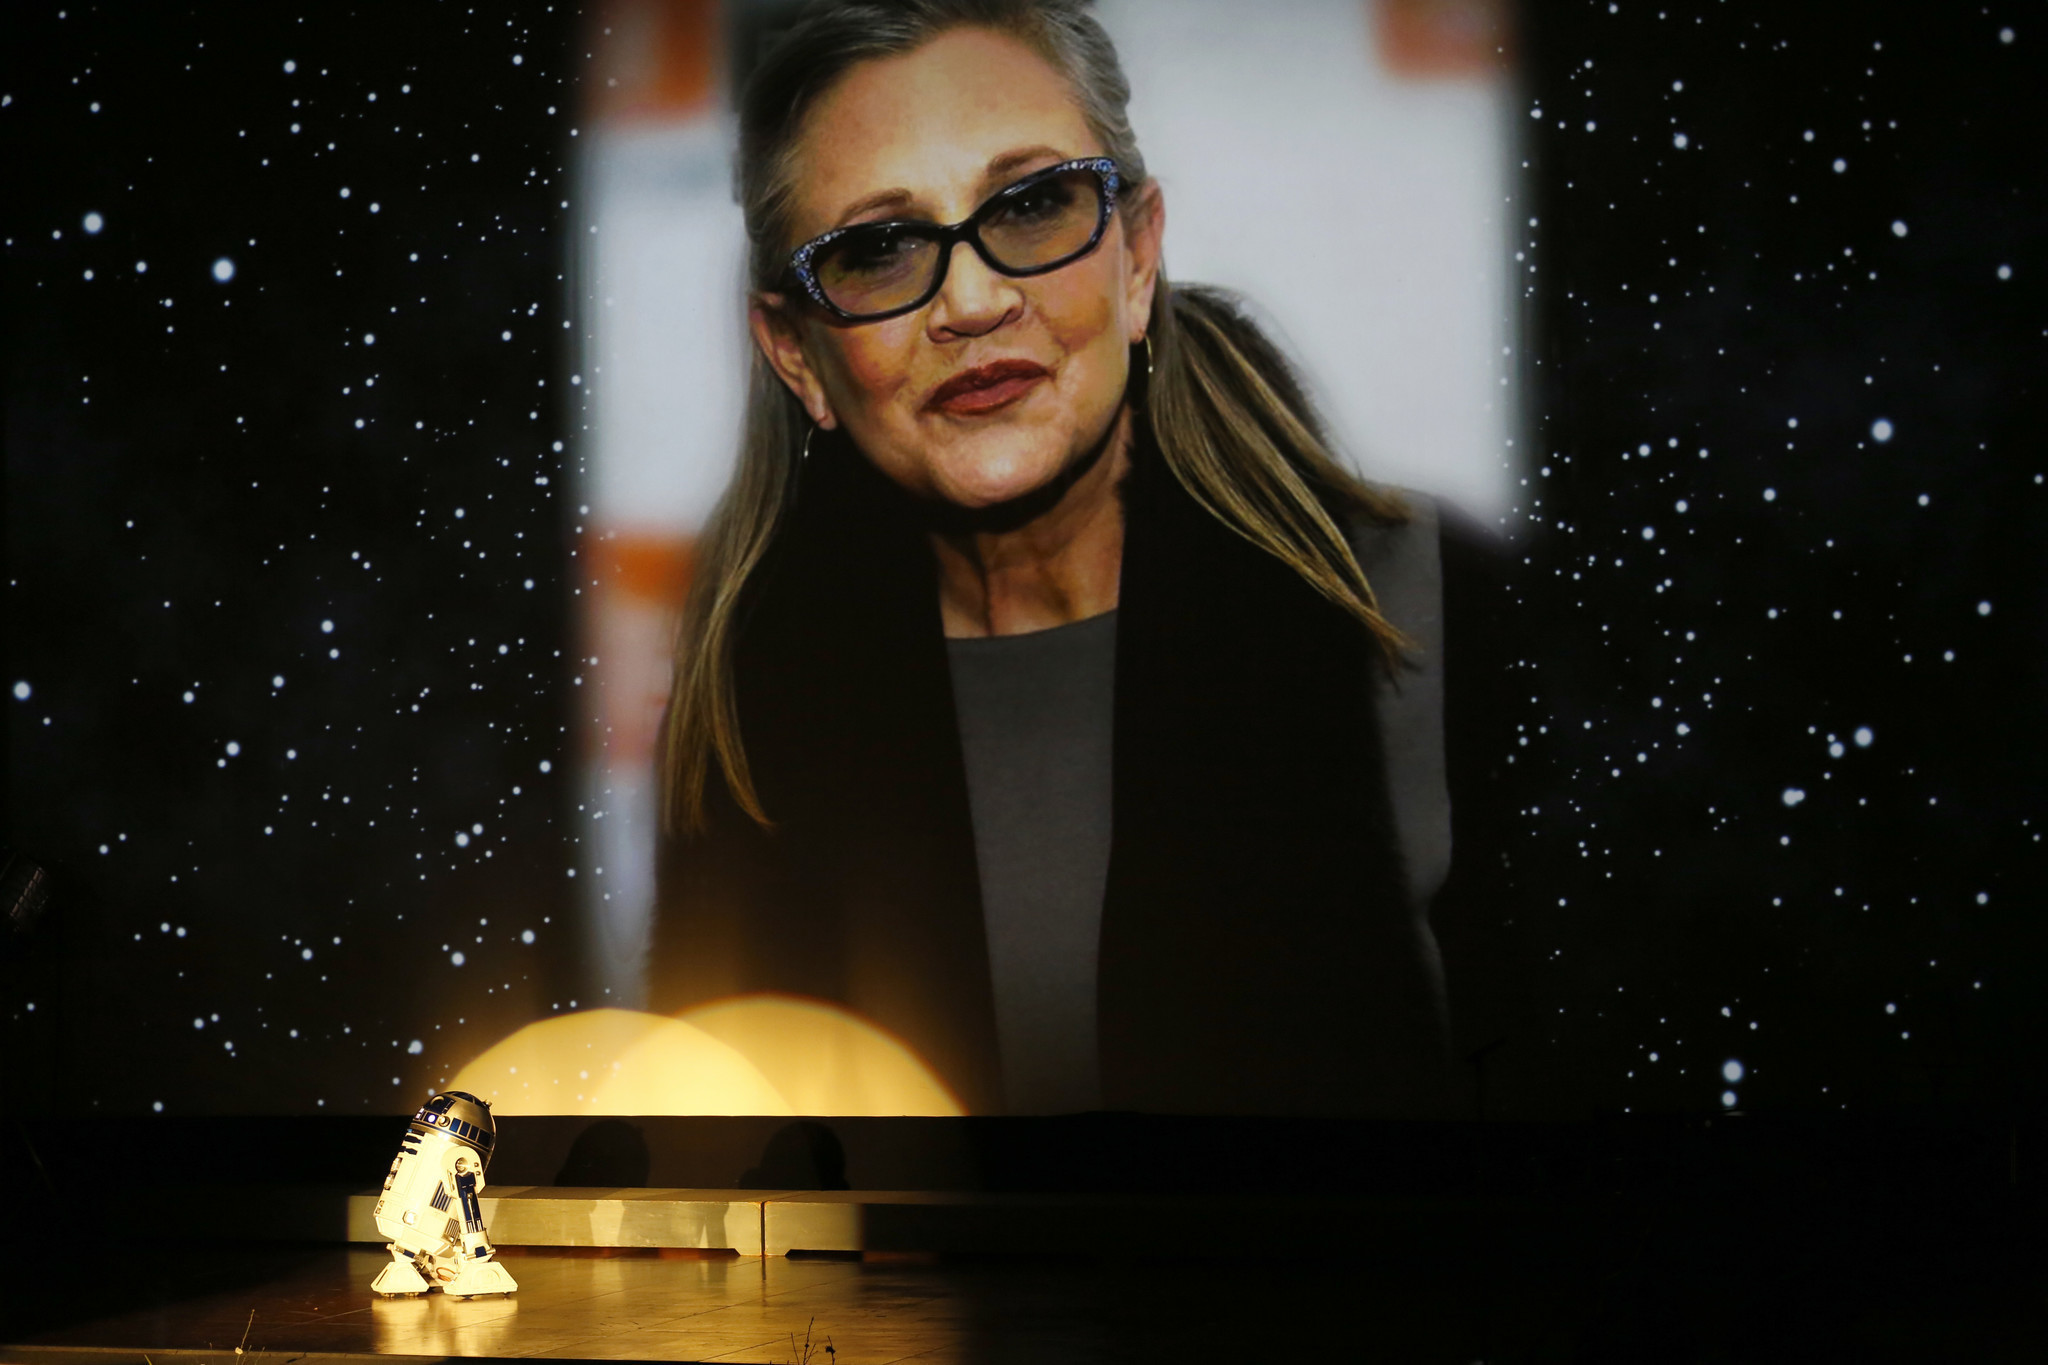 Carrie Fisher opened up about her demons — and knew she wouldn't have a Hollywood ending